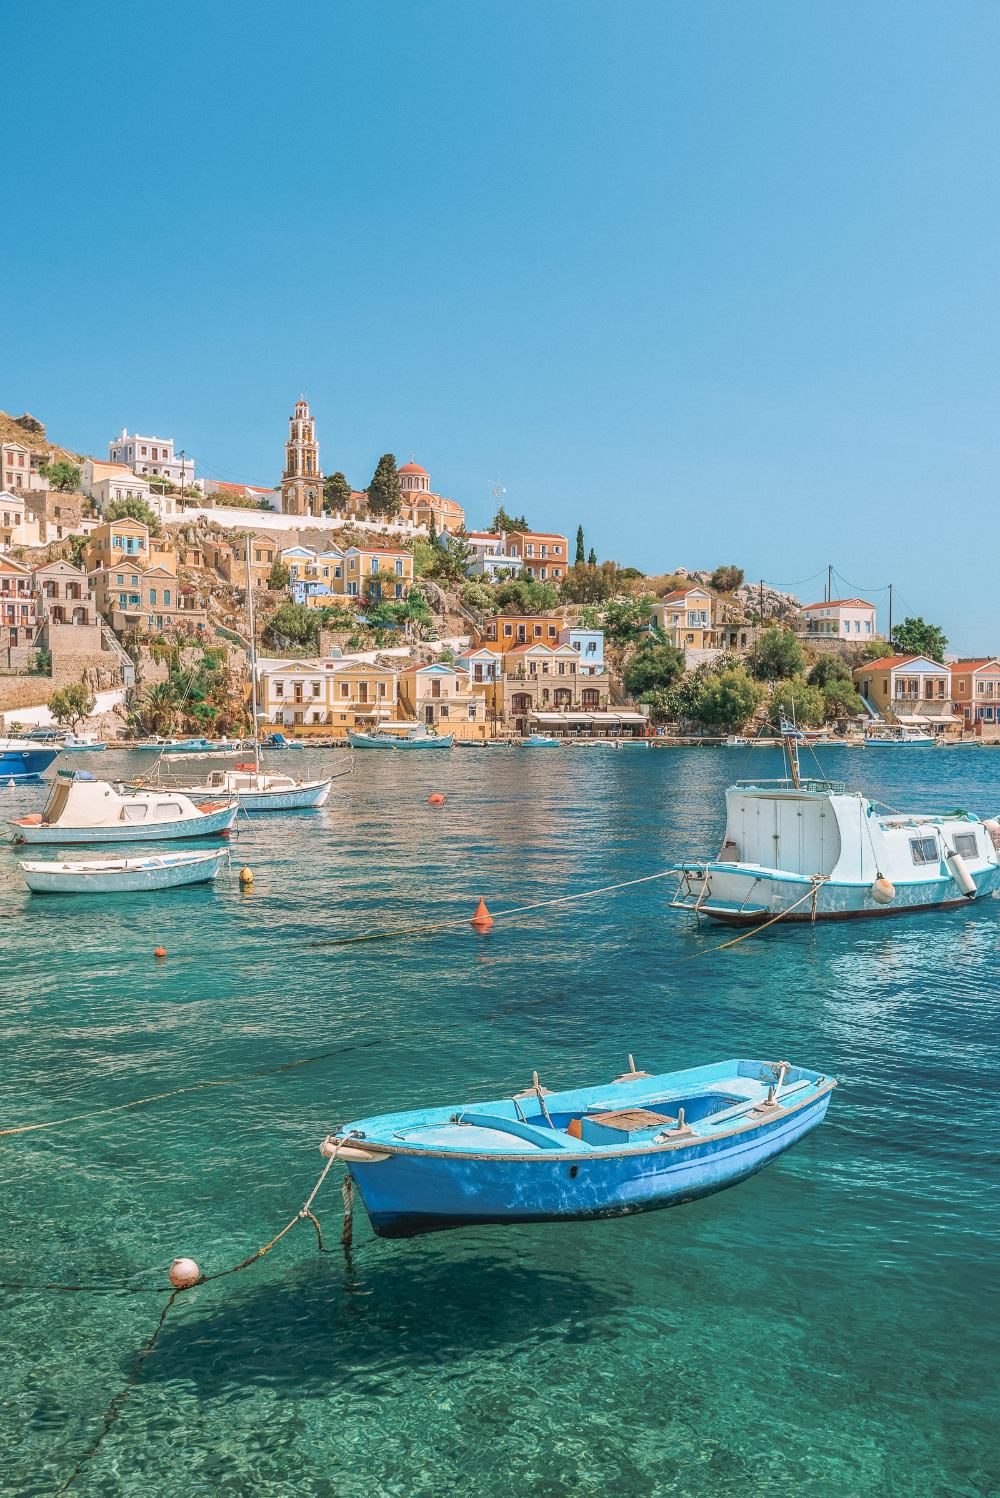 20 Very Best Greek Islands To Visit - Hand Luggage Only - Travel, Food & Photography Blog  #santorini #greece #travellingthroughtheworld #travelling #traveller #travel #traveltips #travelphotography #travelblogger #traveldestinations